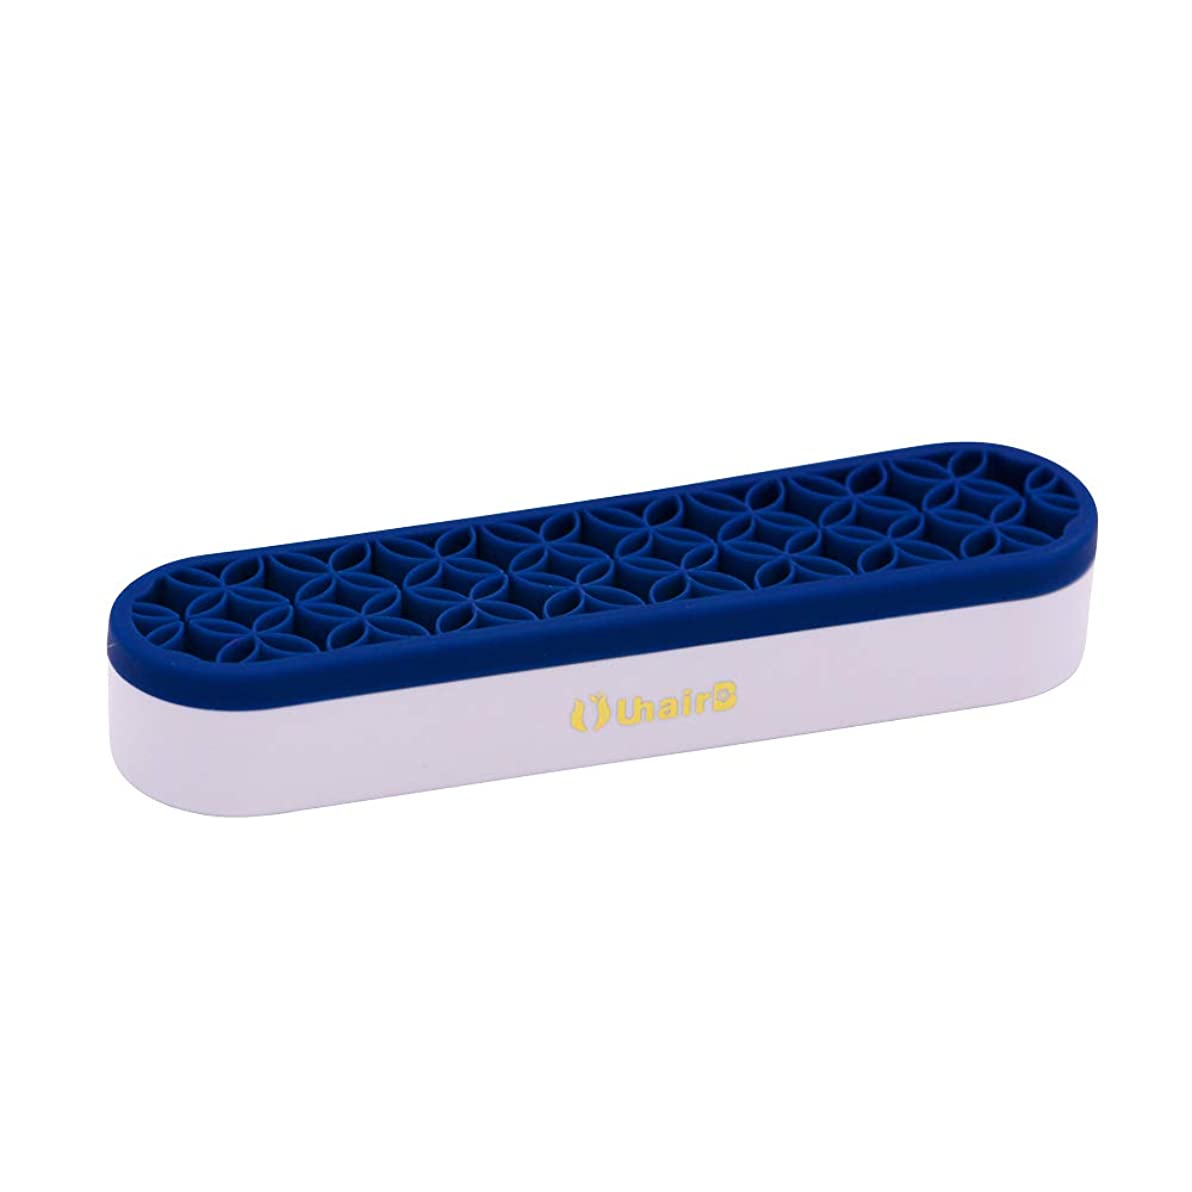 UuhairB Silicon Sew Store Organizers Cosmetic Storage Box& Desktop Storage Box for Stash and Store (Deep Blue)